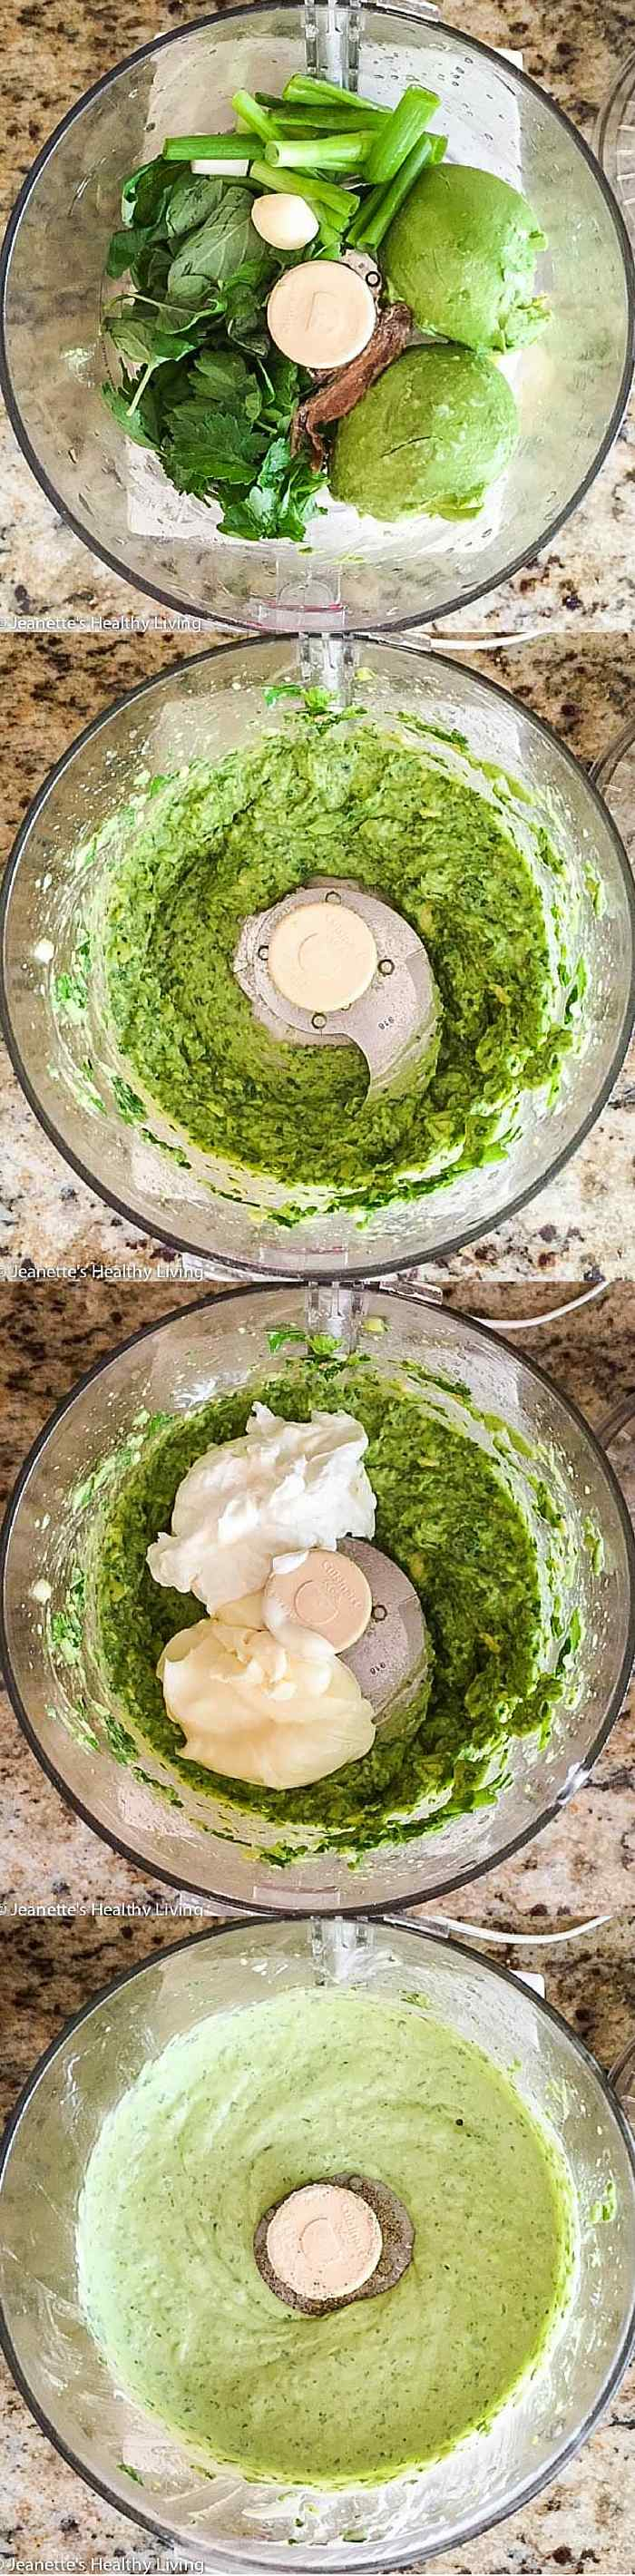 Avocado Greek Yogurt Green Goddess Dip - this light dip, made with Greek yogurt, is creamy and delicious - serve with an assortment of veggies for your next party